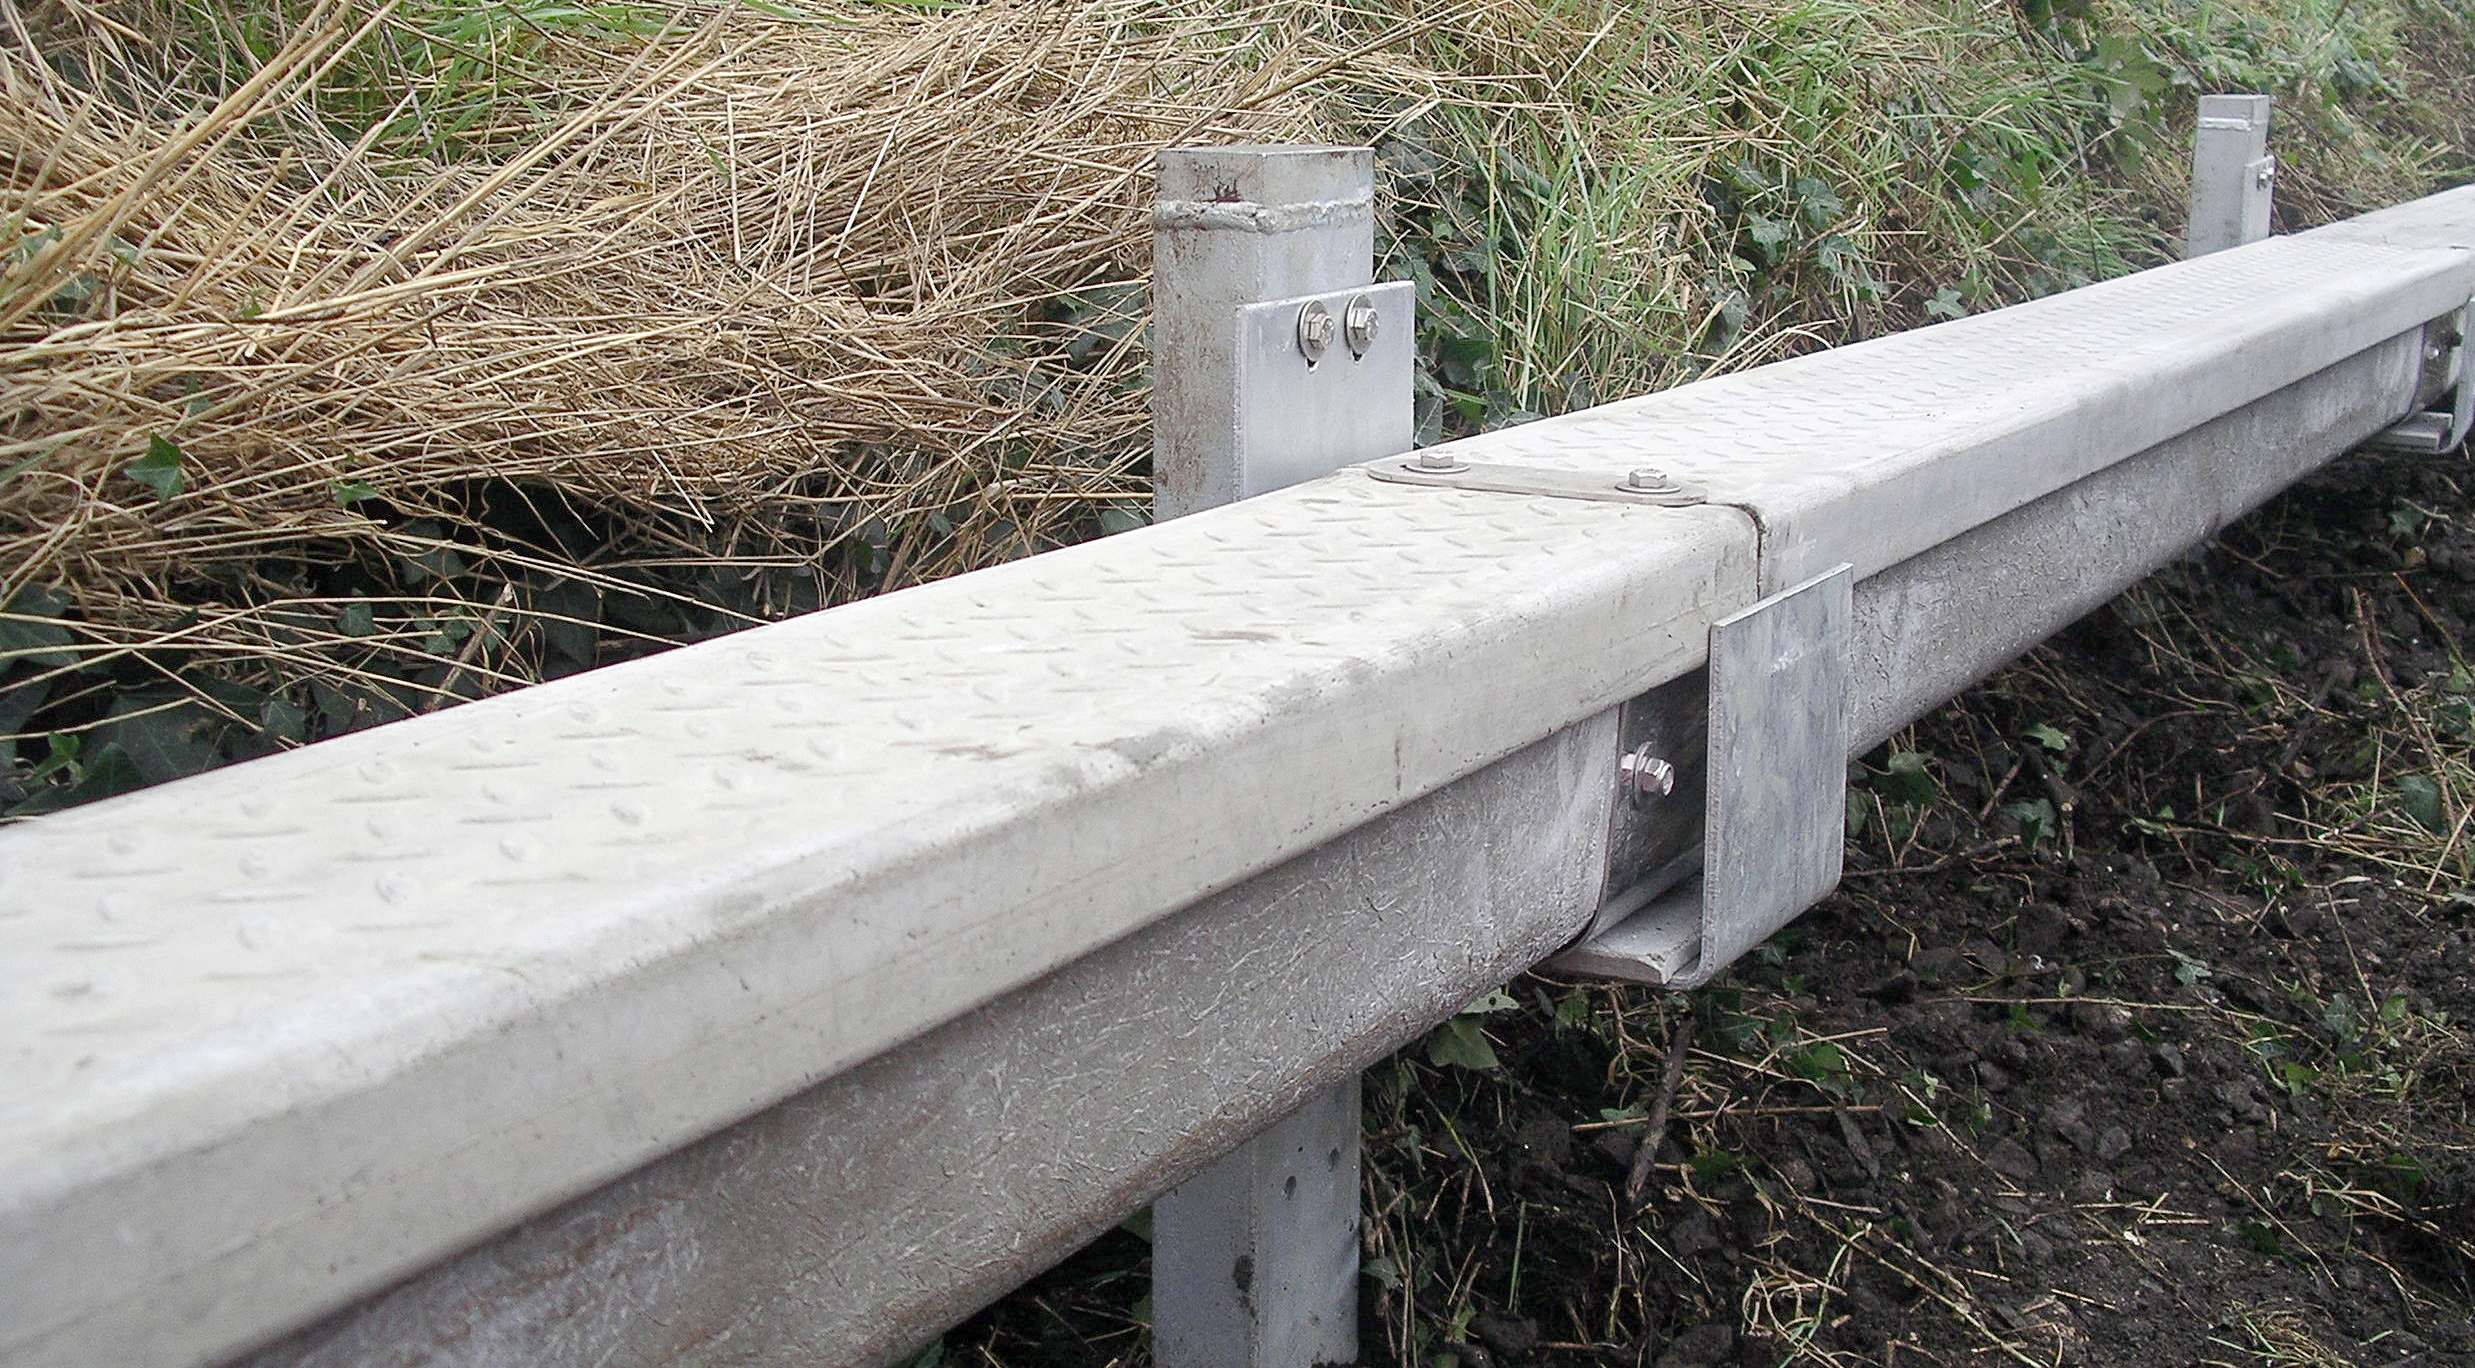 Grc Civic >> Updated Rail Troughing | GRC - Glassfibre Reinforced Concrete